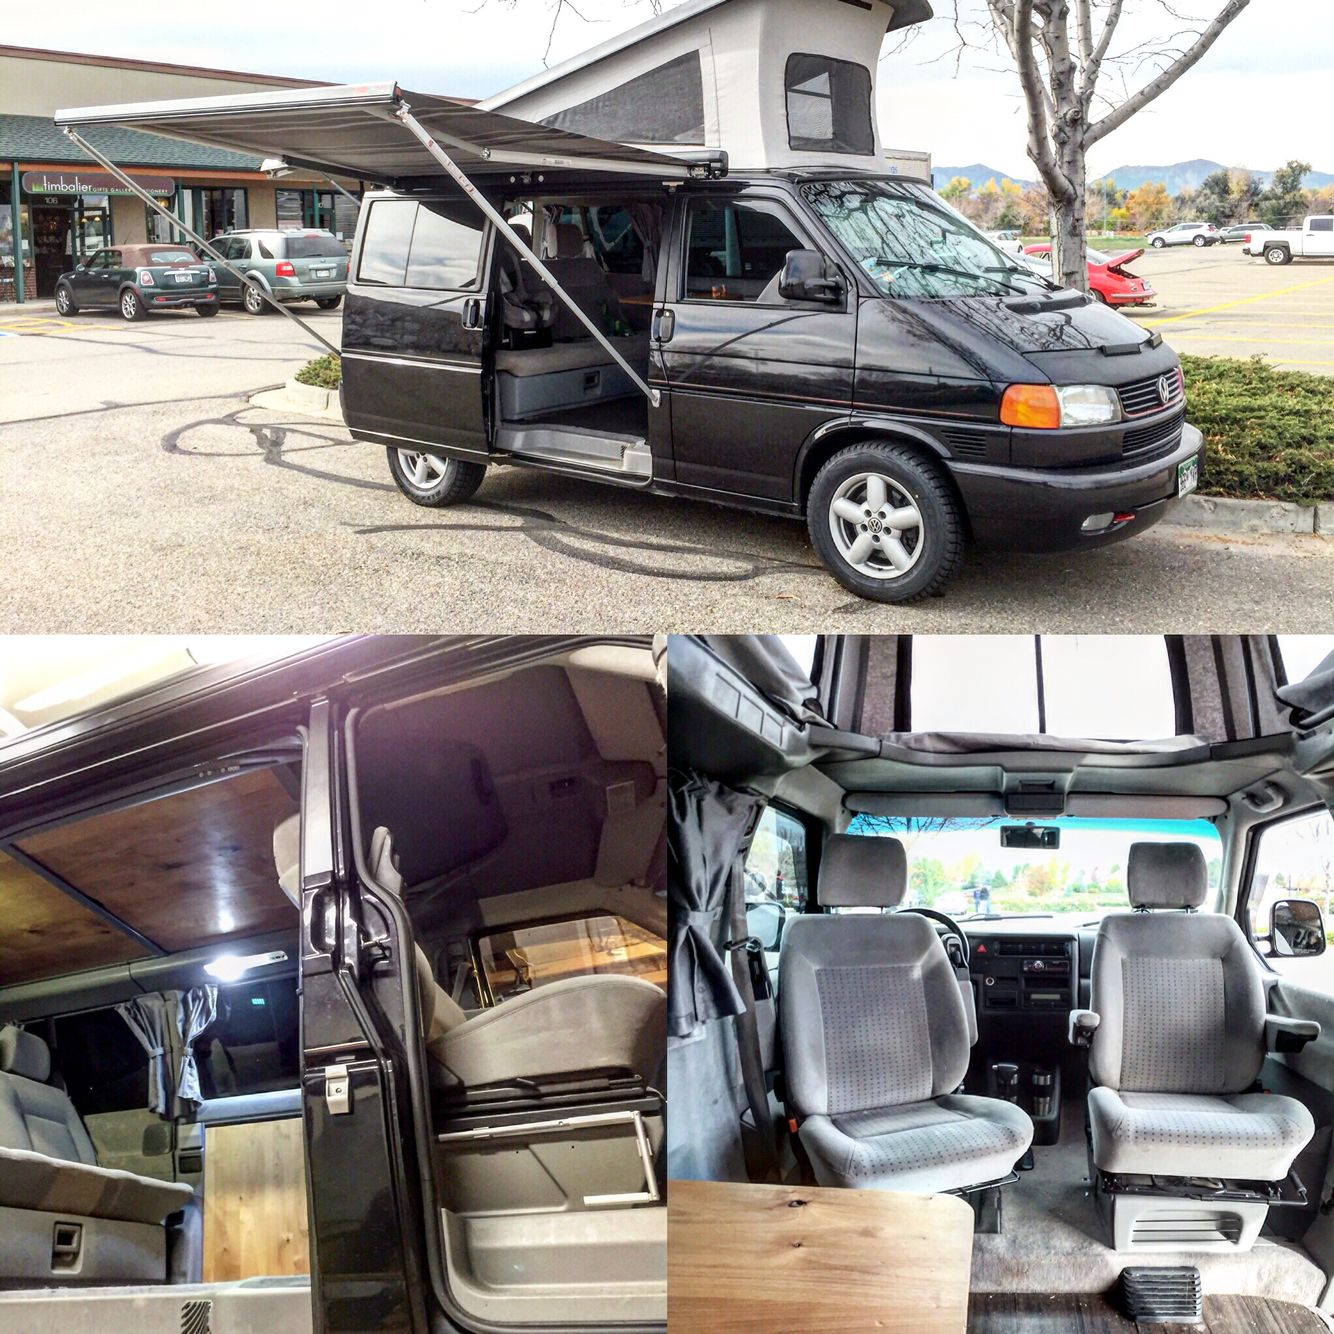 CaveVan GLS To Westfalia Weekender Poptop Conversion VW Eurovan Seat Swivels Alder Wood Interior Fiamma Awning And Lots Of Other Custom Work